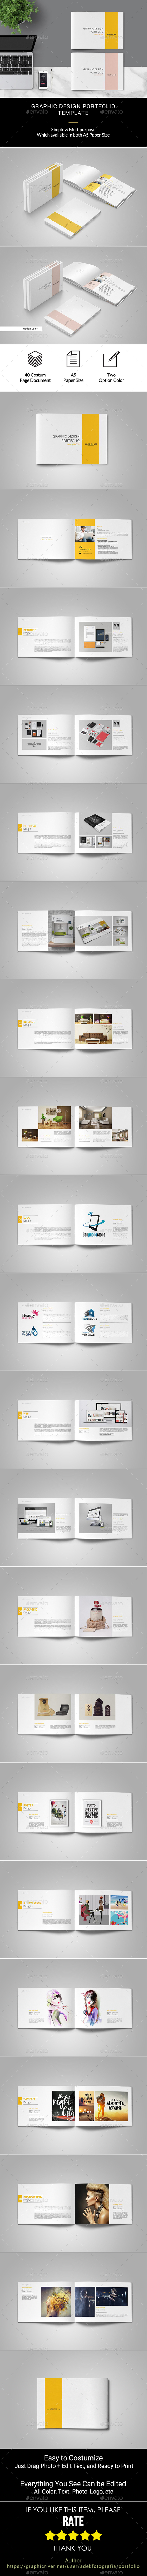 GraphicRiver Graphic Design Portfolio Template 21184758